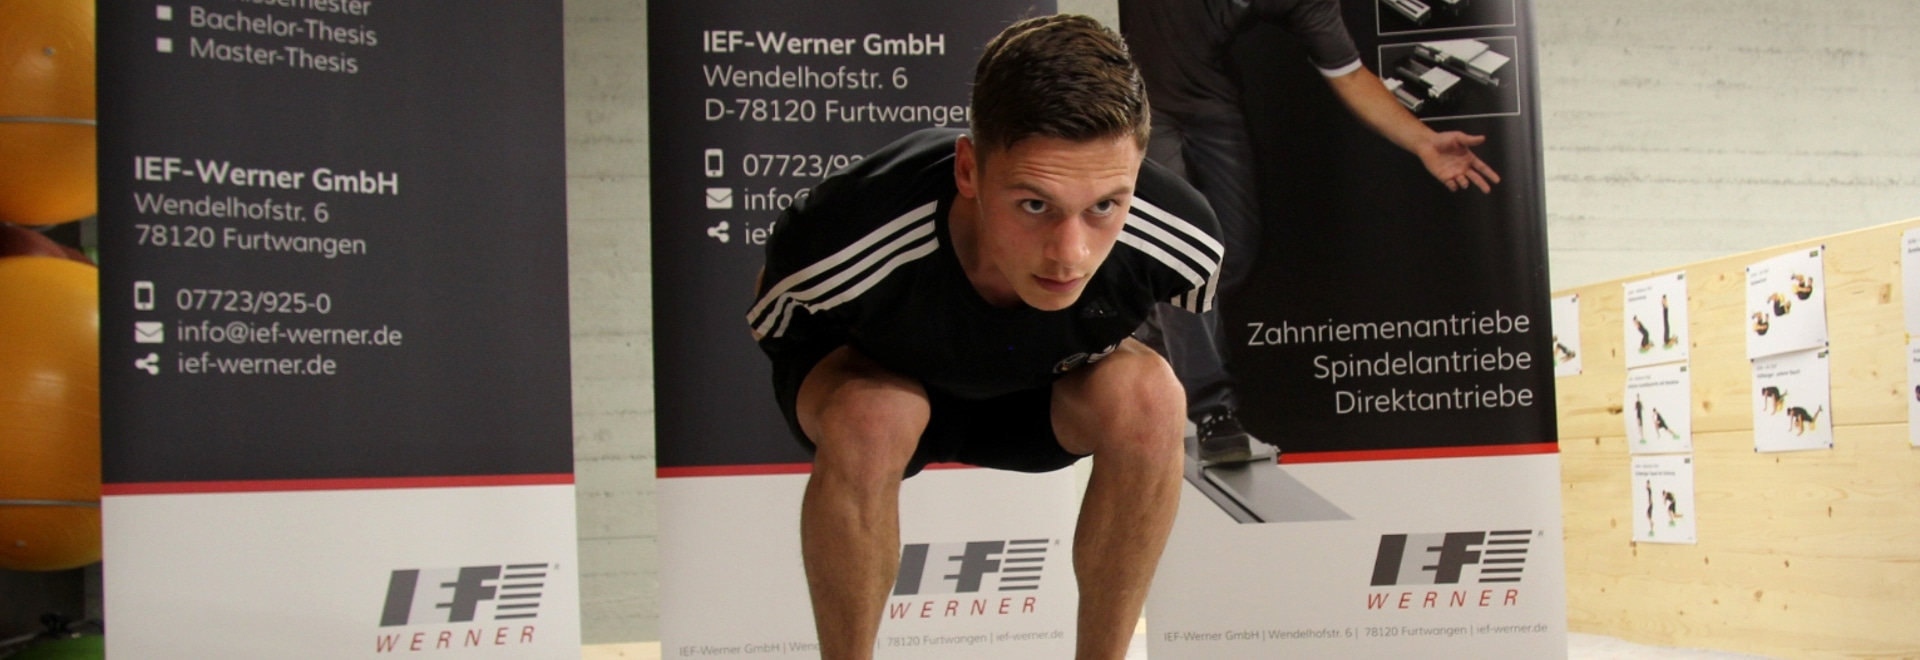 The Nordic combined athlete Paul Schlegel is excited about the jumping simulator of IEF-Werner.